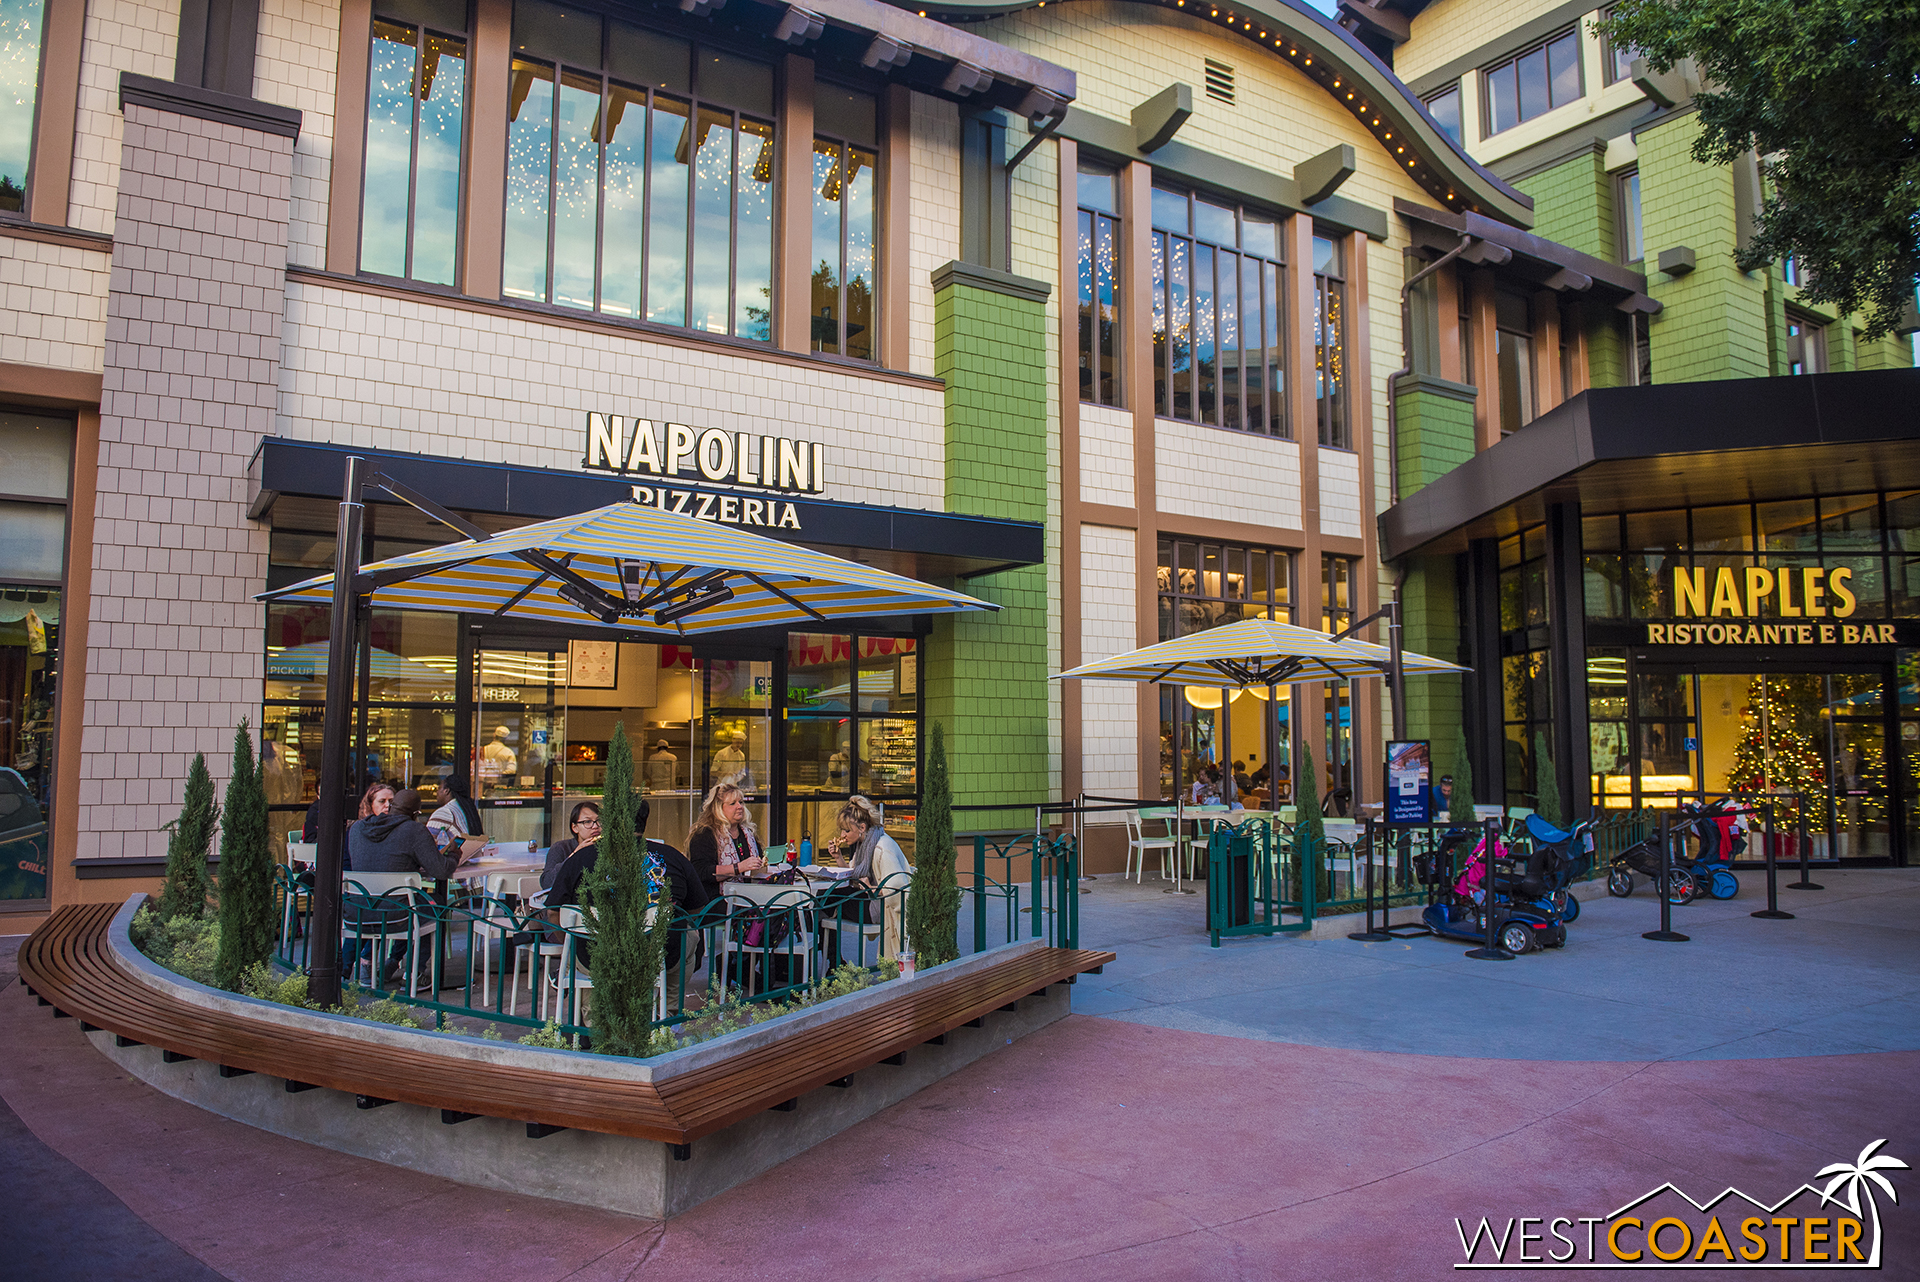 Naples has also completed its transformation.